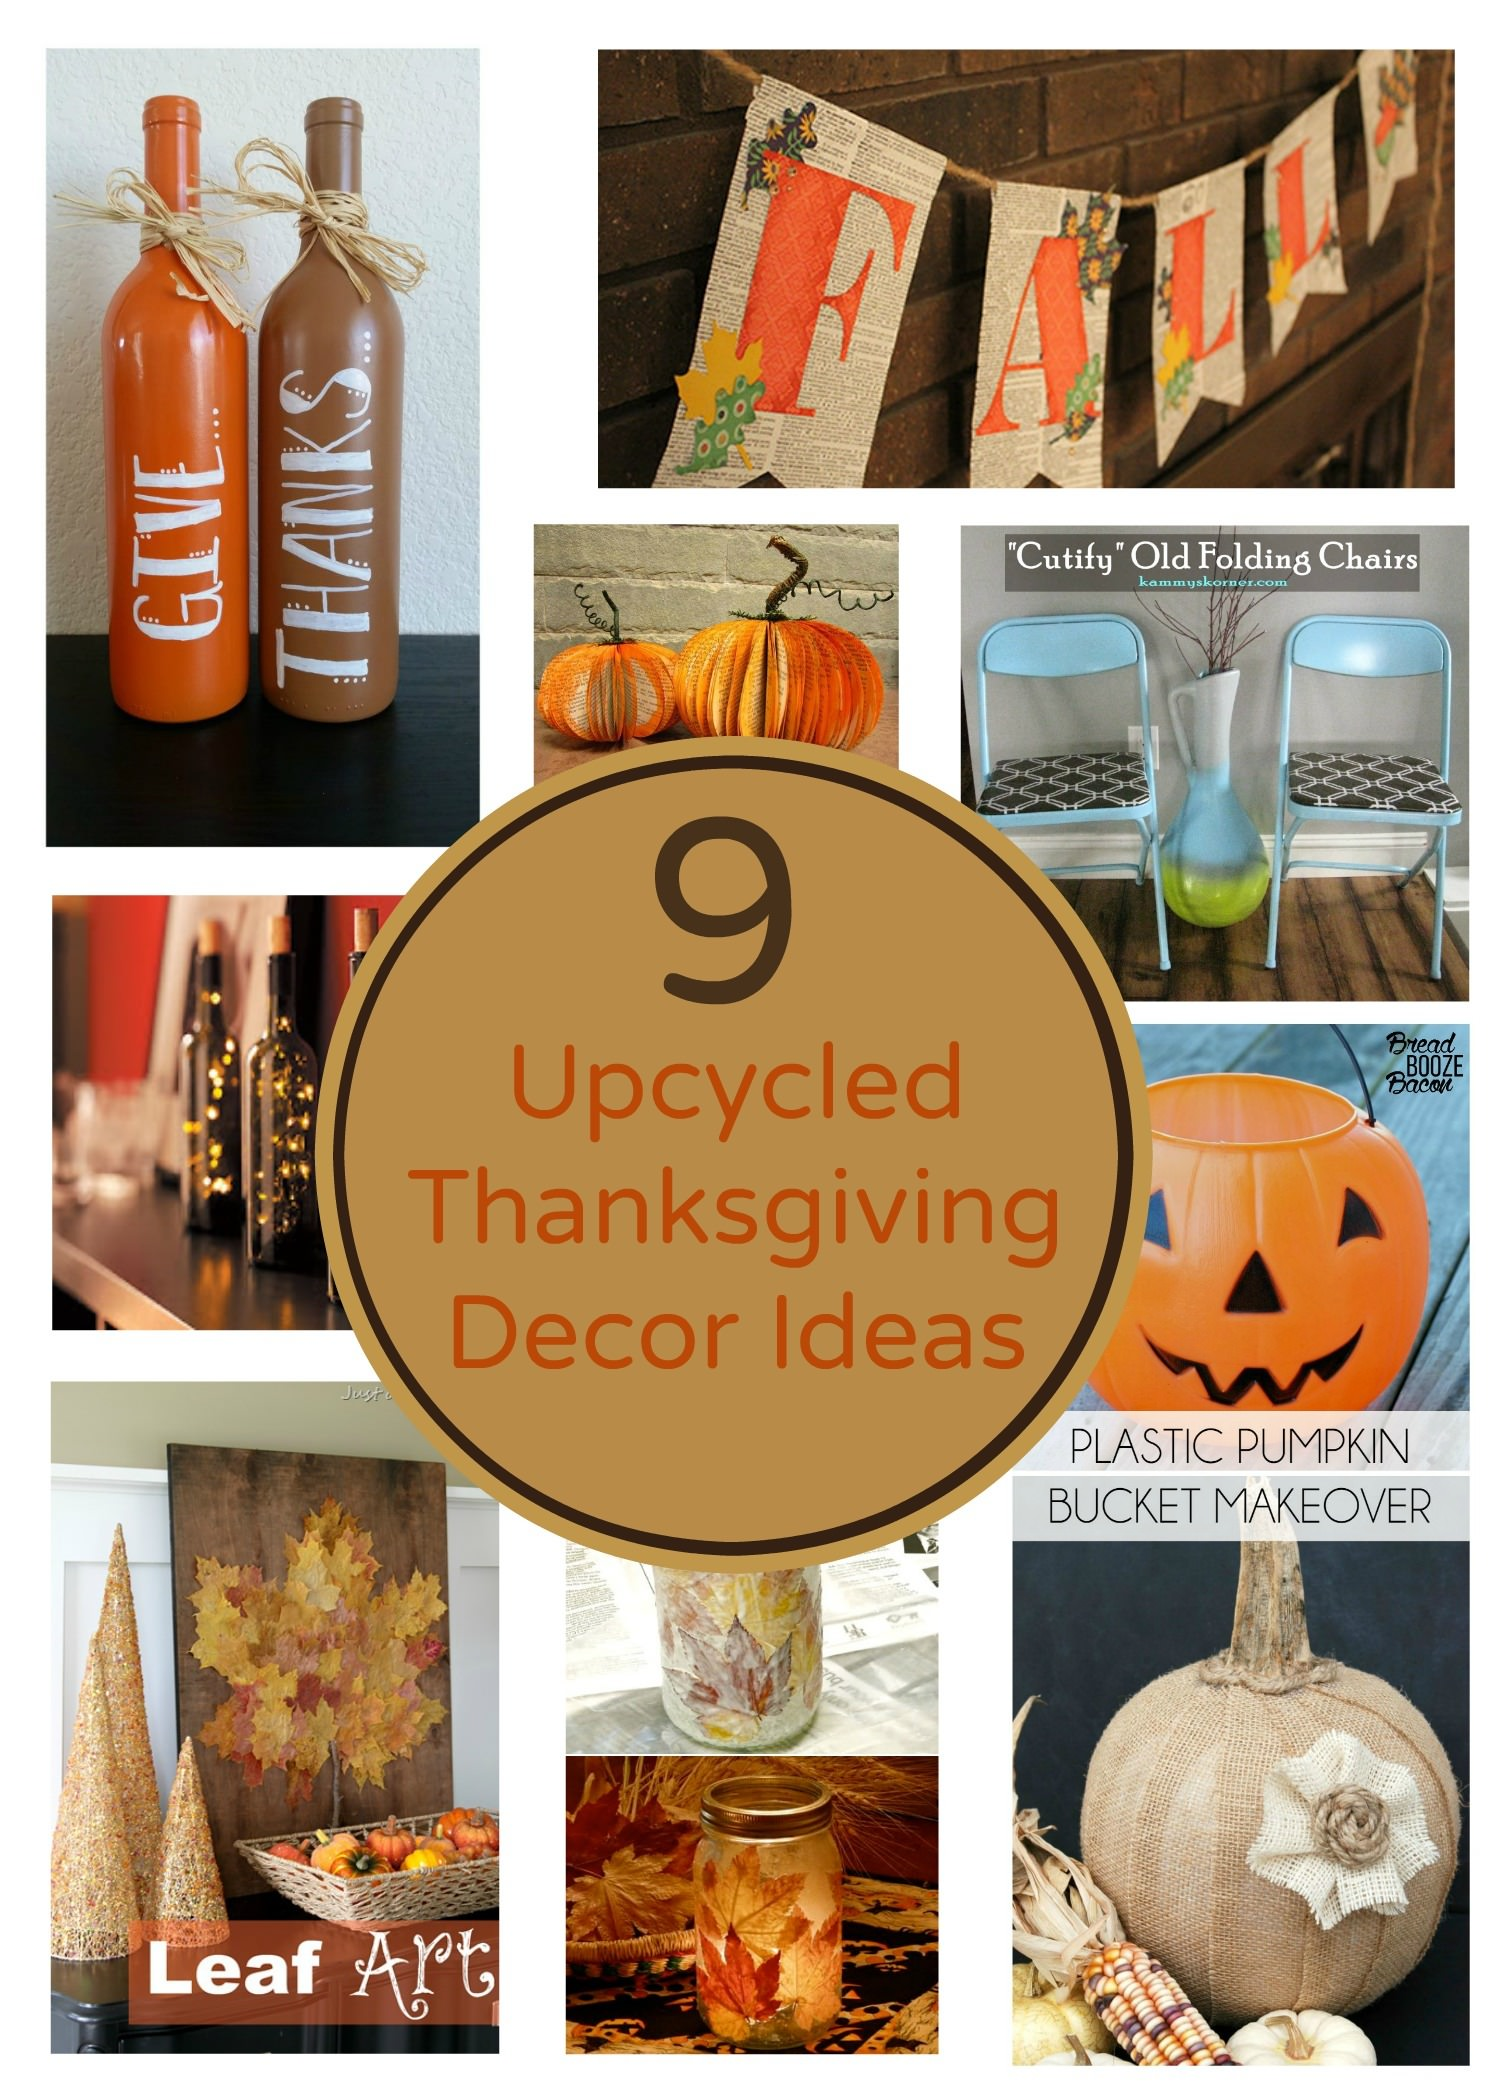 9 Eco Friendly Upcycled Thanksgiving Decoration Ideas Earth 911